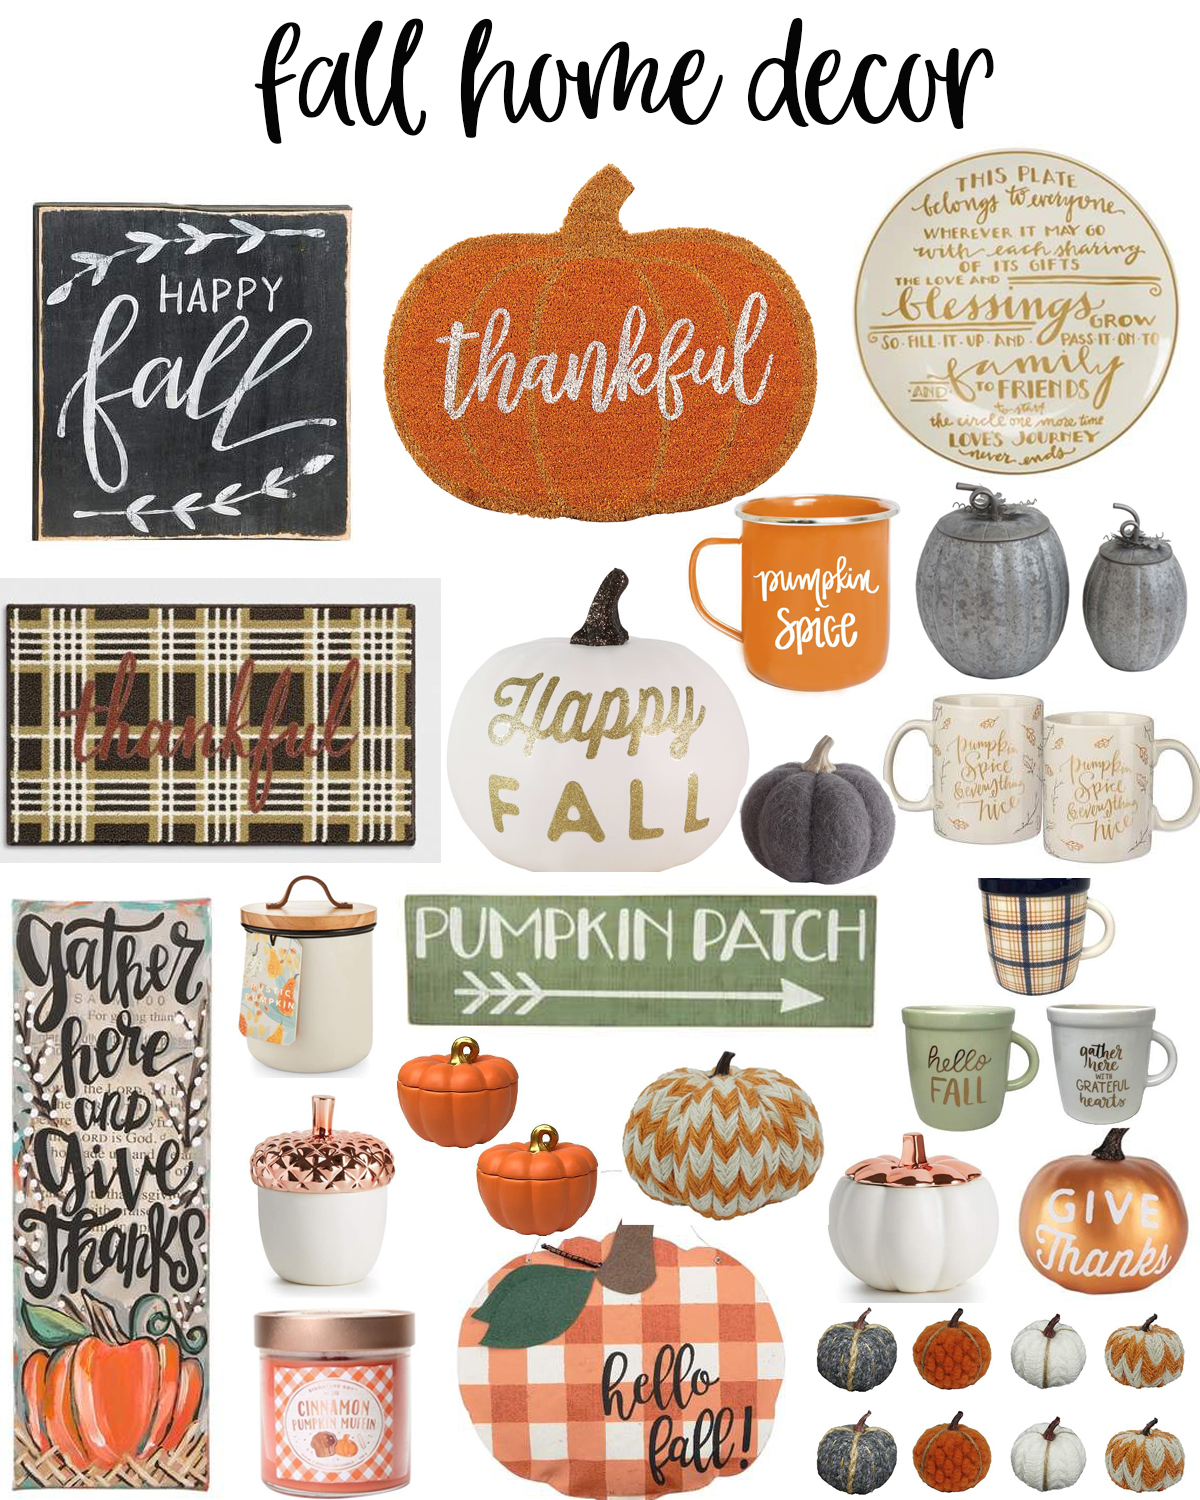 Cute Fall Home Decor Ideas to Bring the Harvest Home featured by popular Houston lifestyle blogger, Fancy Ashley